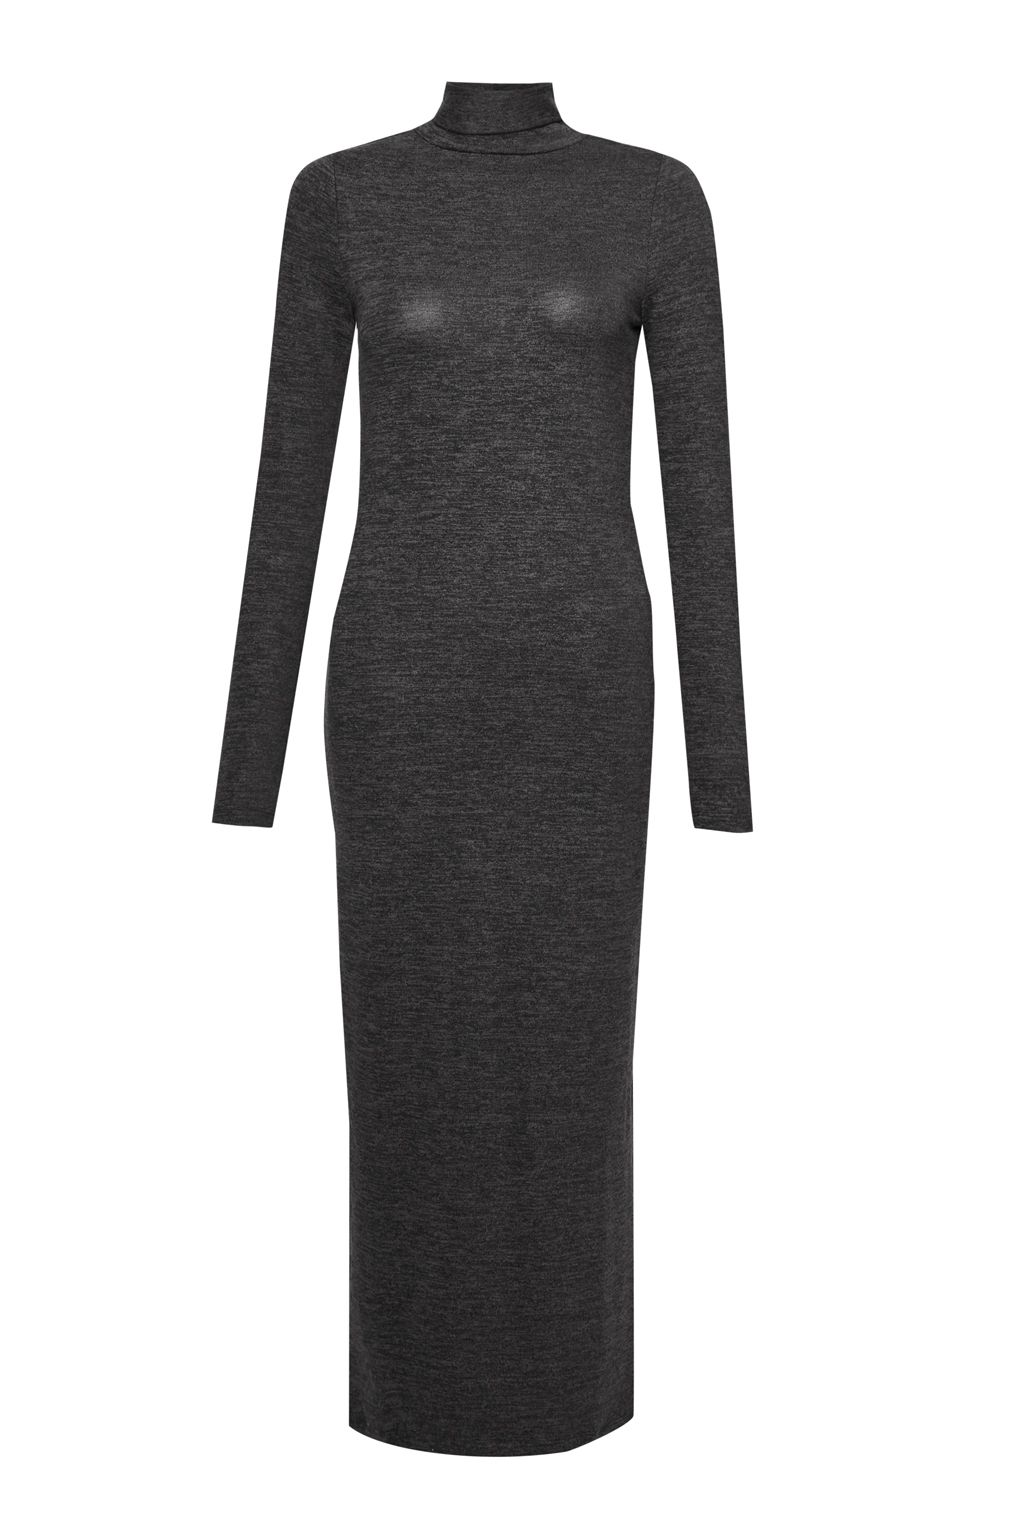 French Connection Sweeter Sweater Roll Neck Jumper Dress, Grey